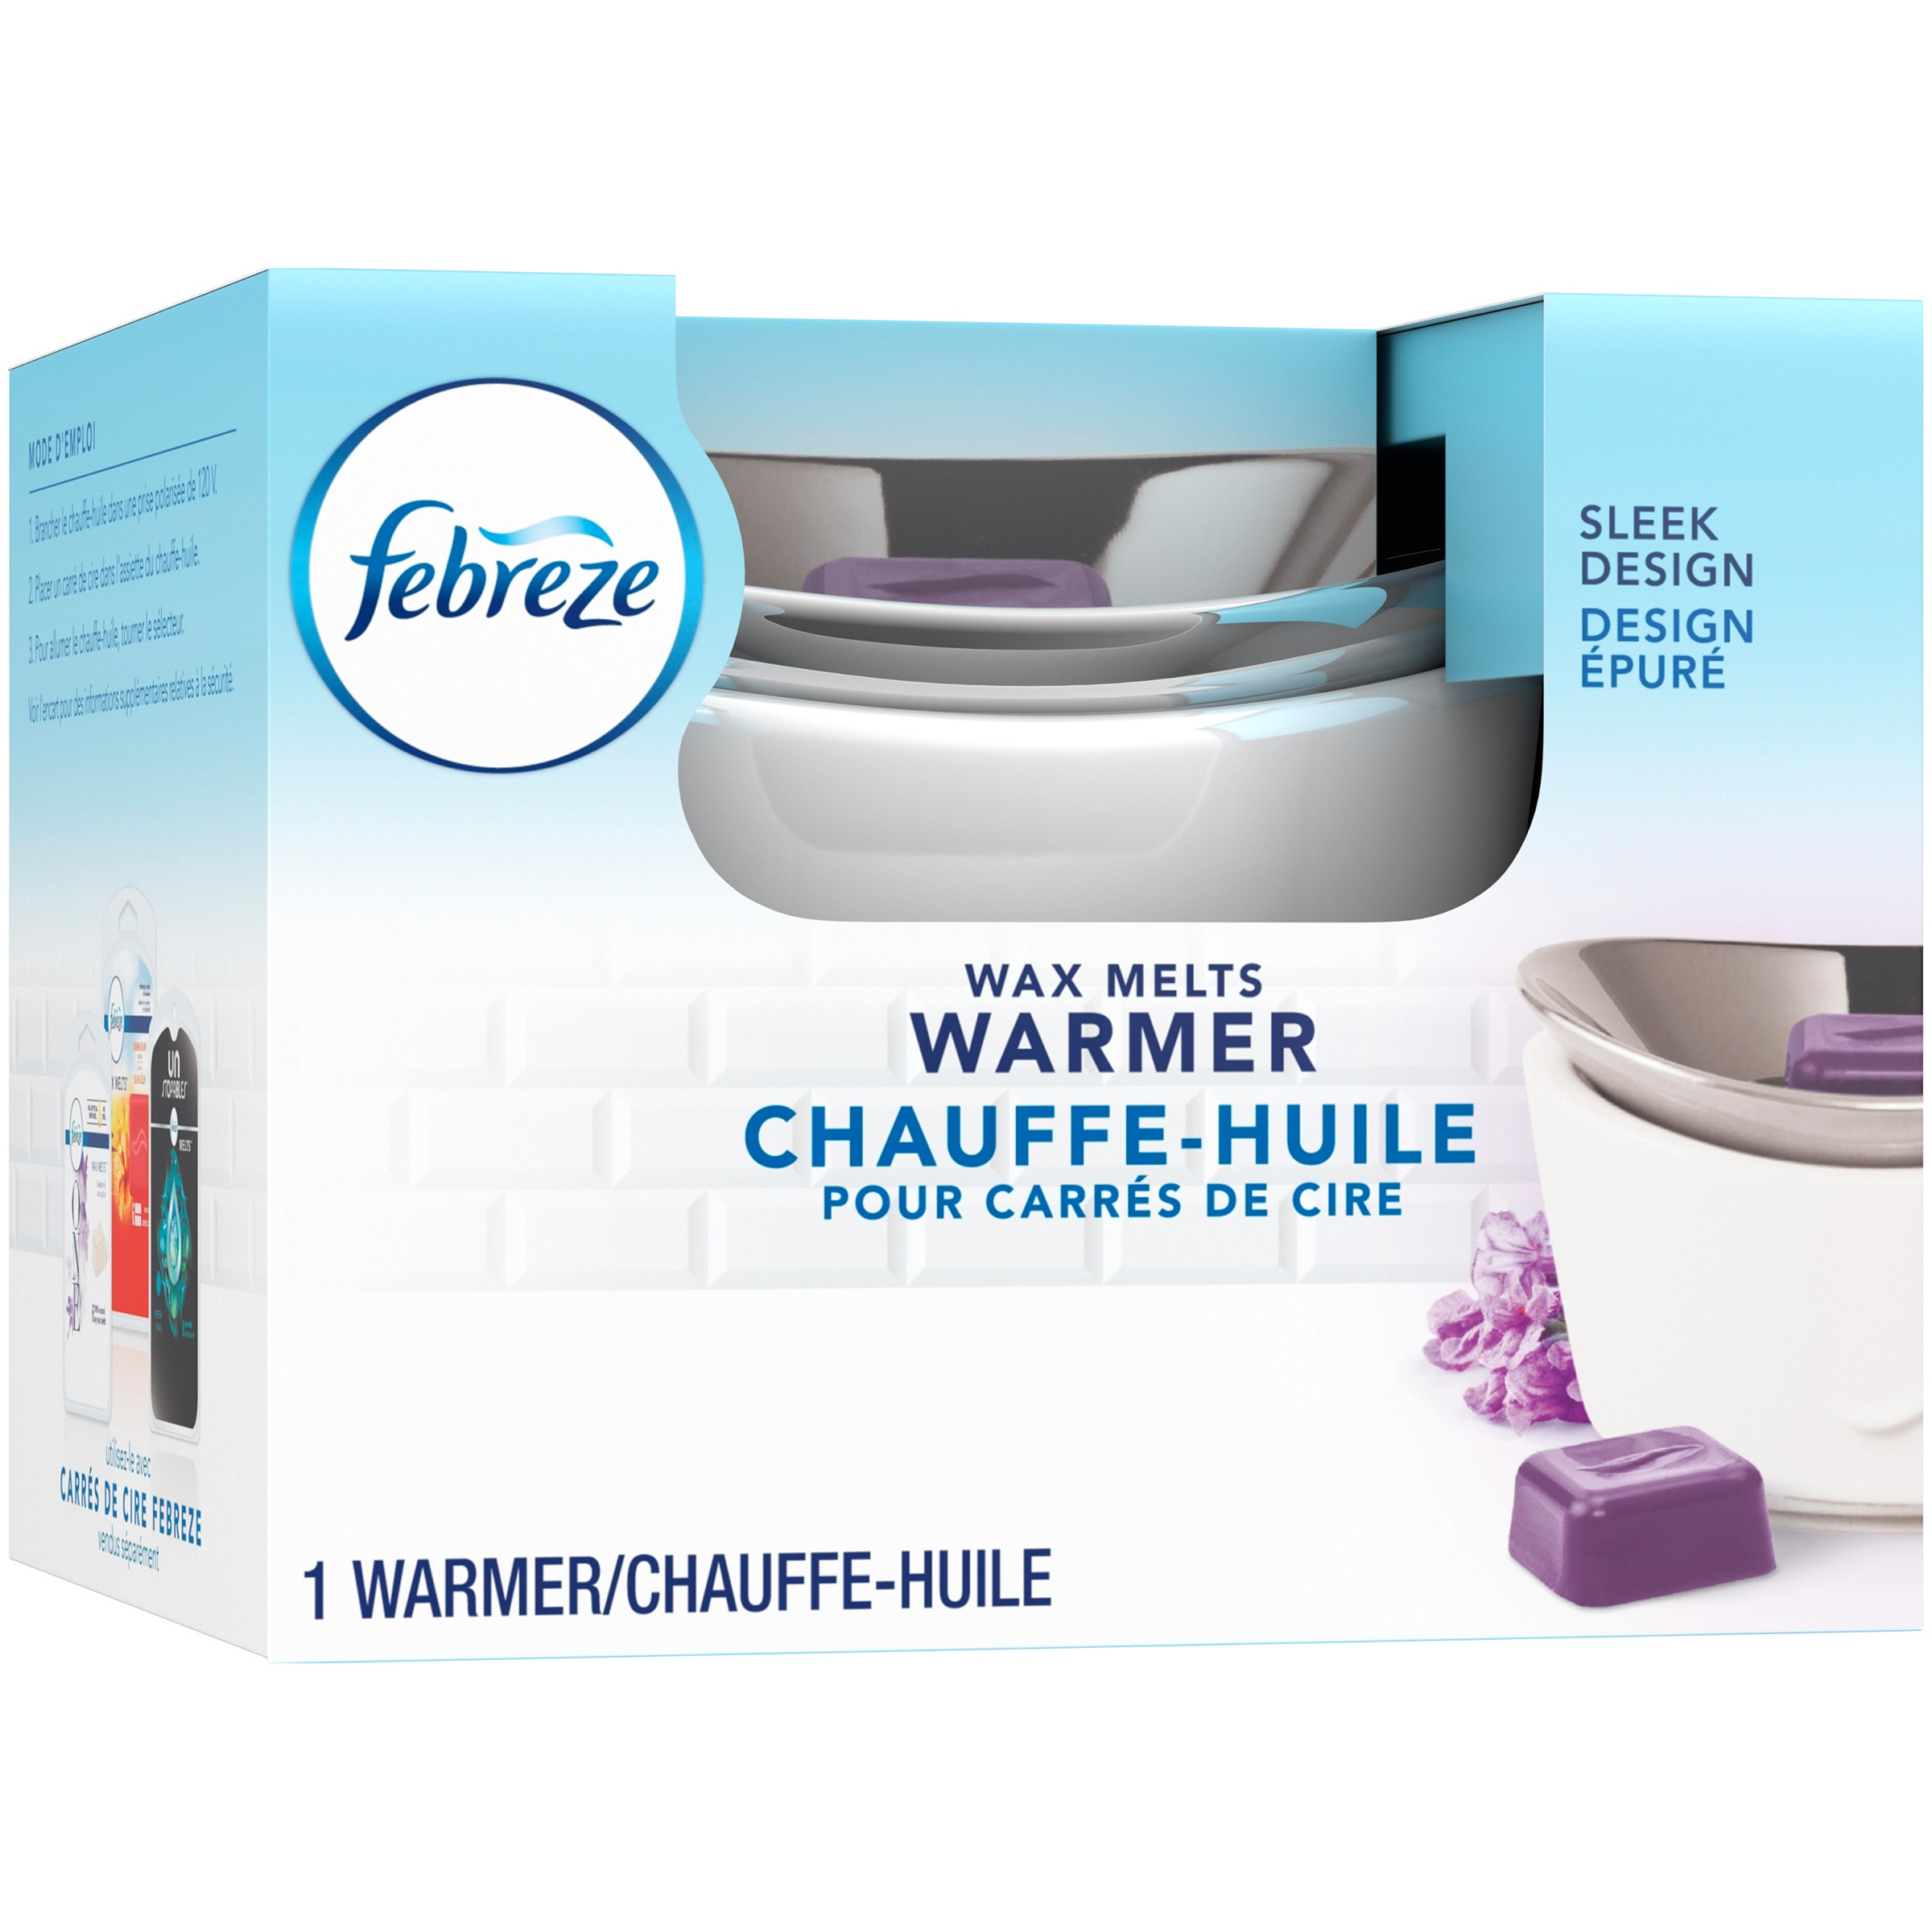 Febreze Wax Melts Warmer Air Freshener